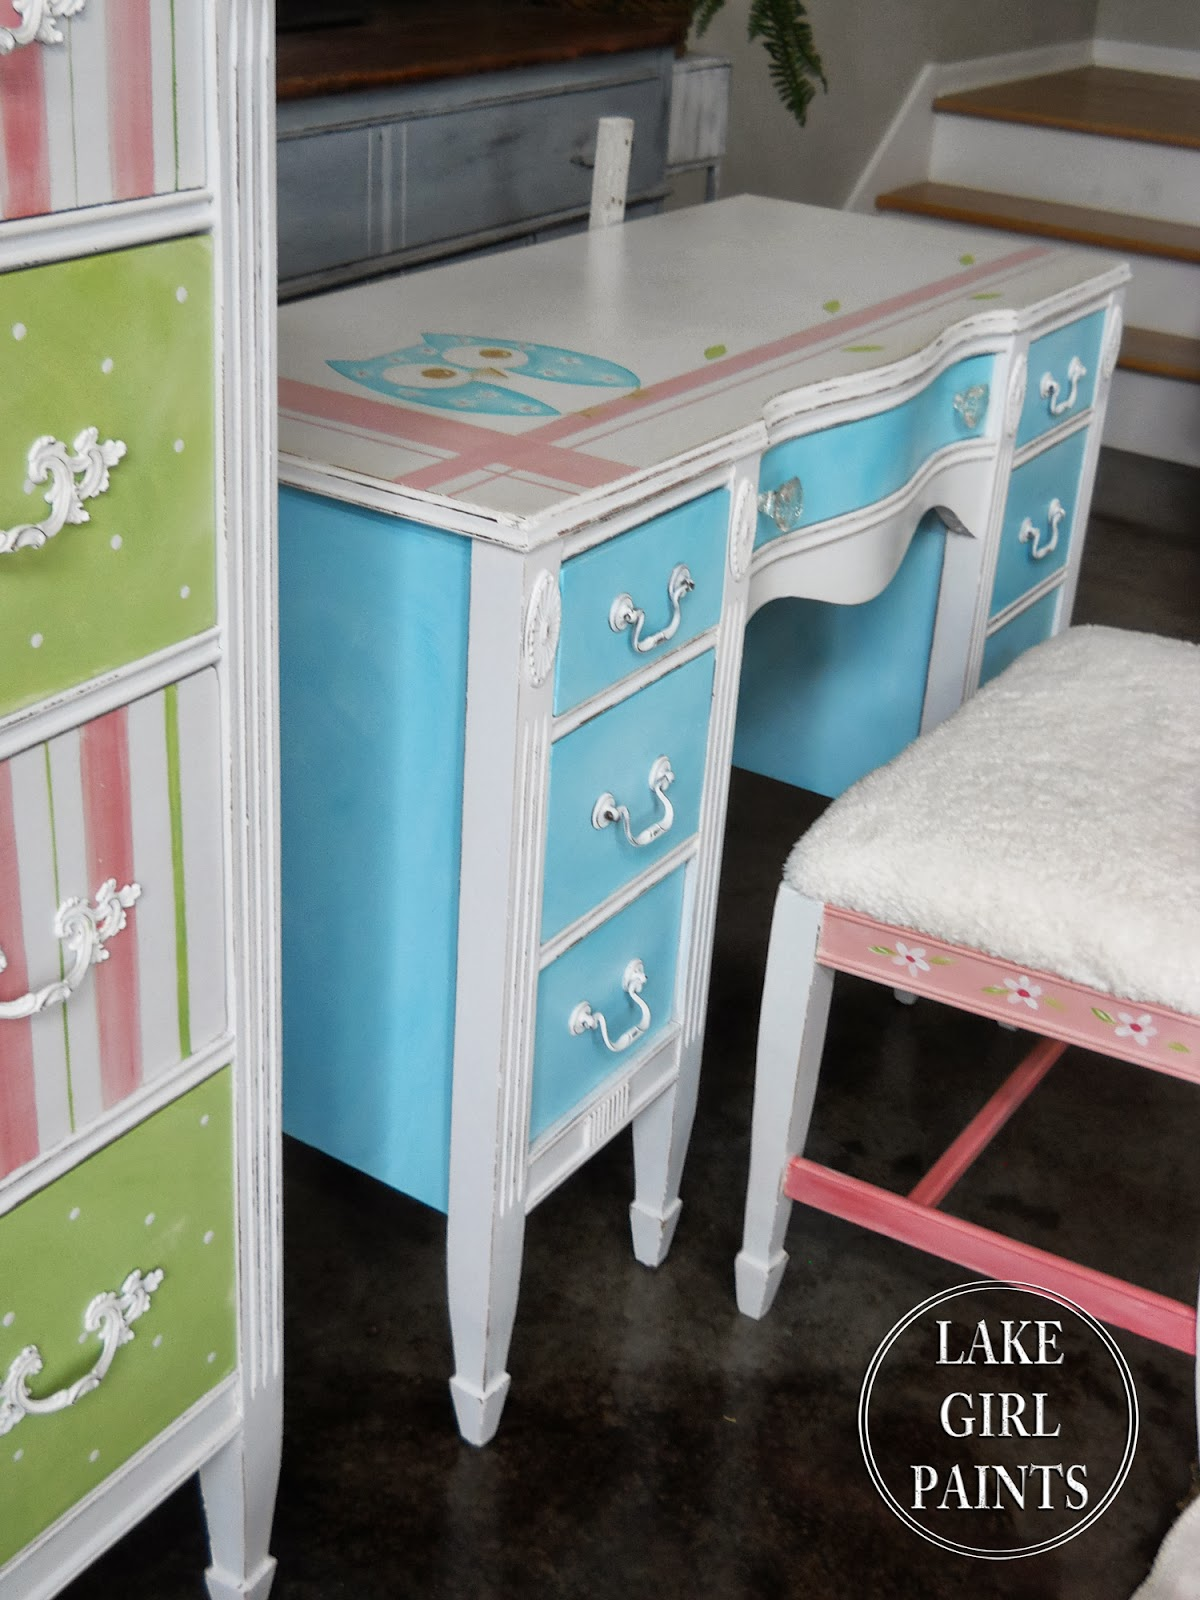 Lake Girl Paints Girl s Painted Bedroom Furniture